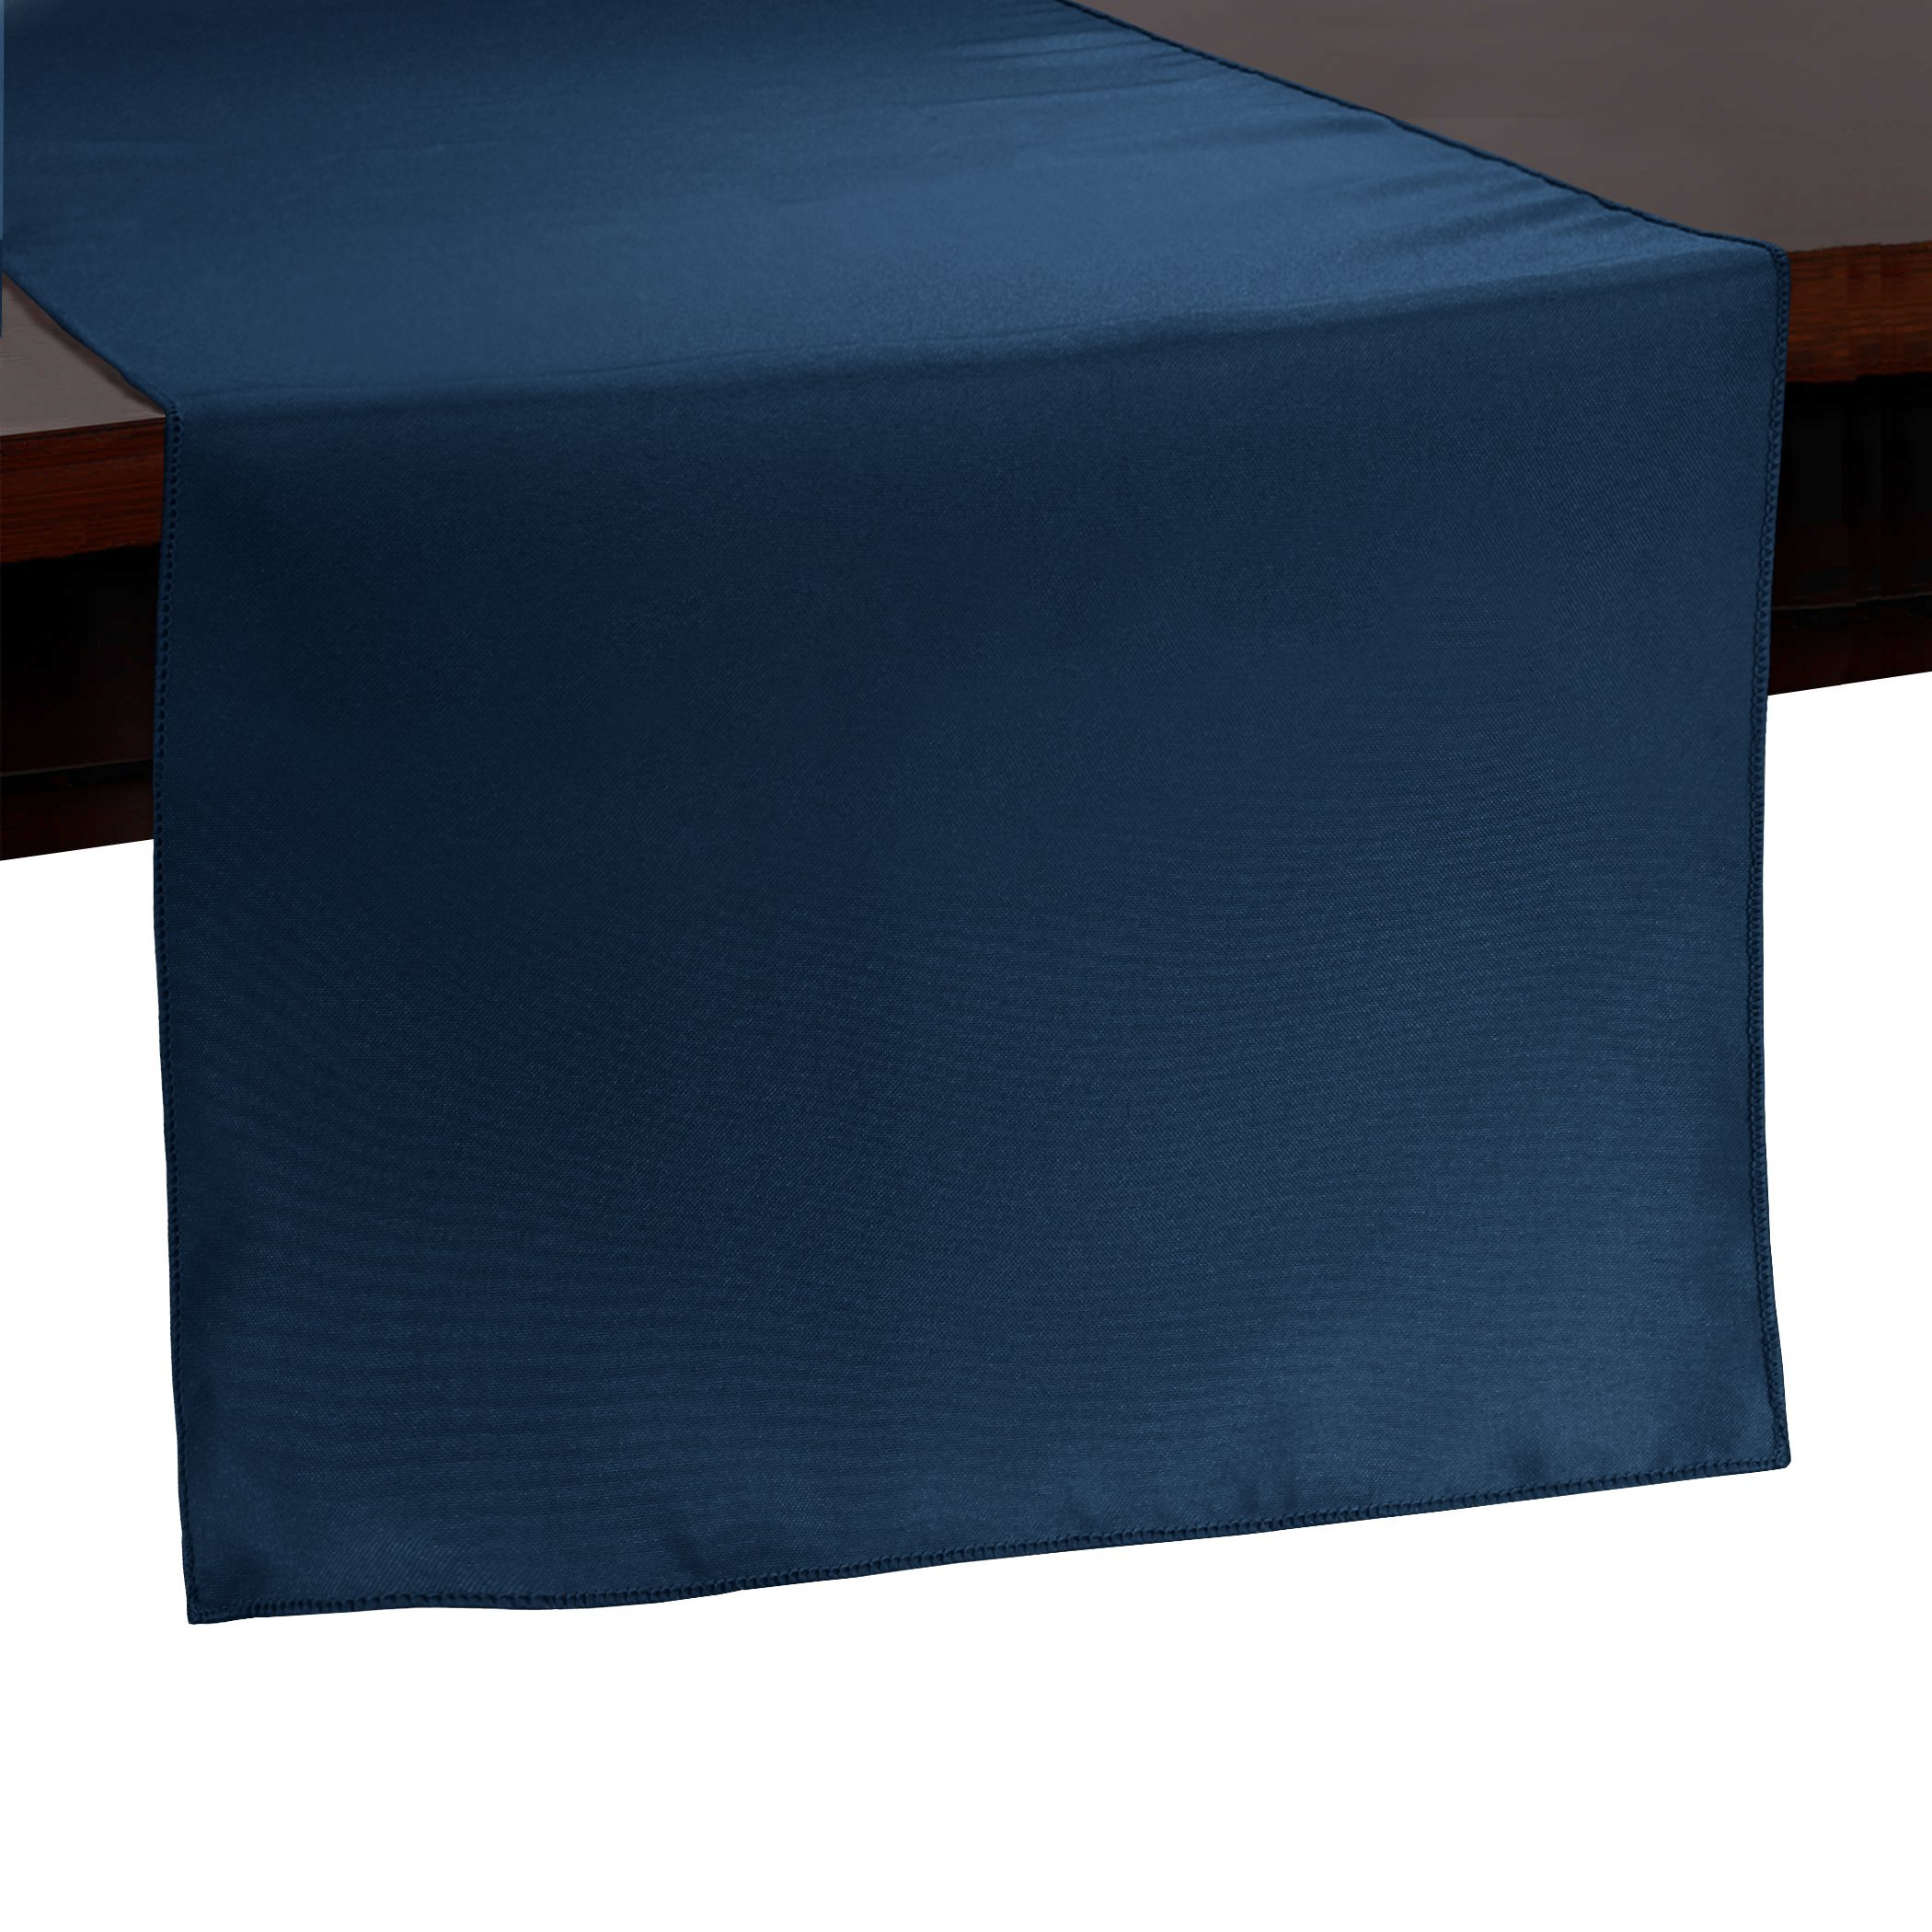 Ultimate Textile -10 Pack- 14 x 90-Inch Polyester Table Runner - for Wedding, Restaurant or Banquet use, Navy Blue